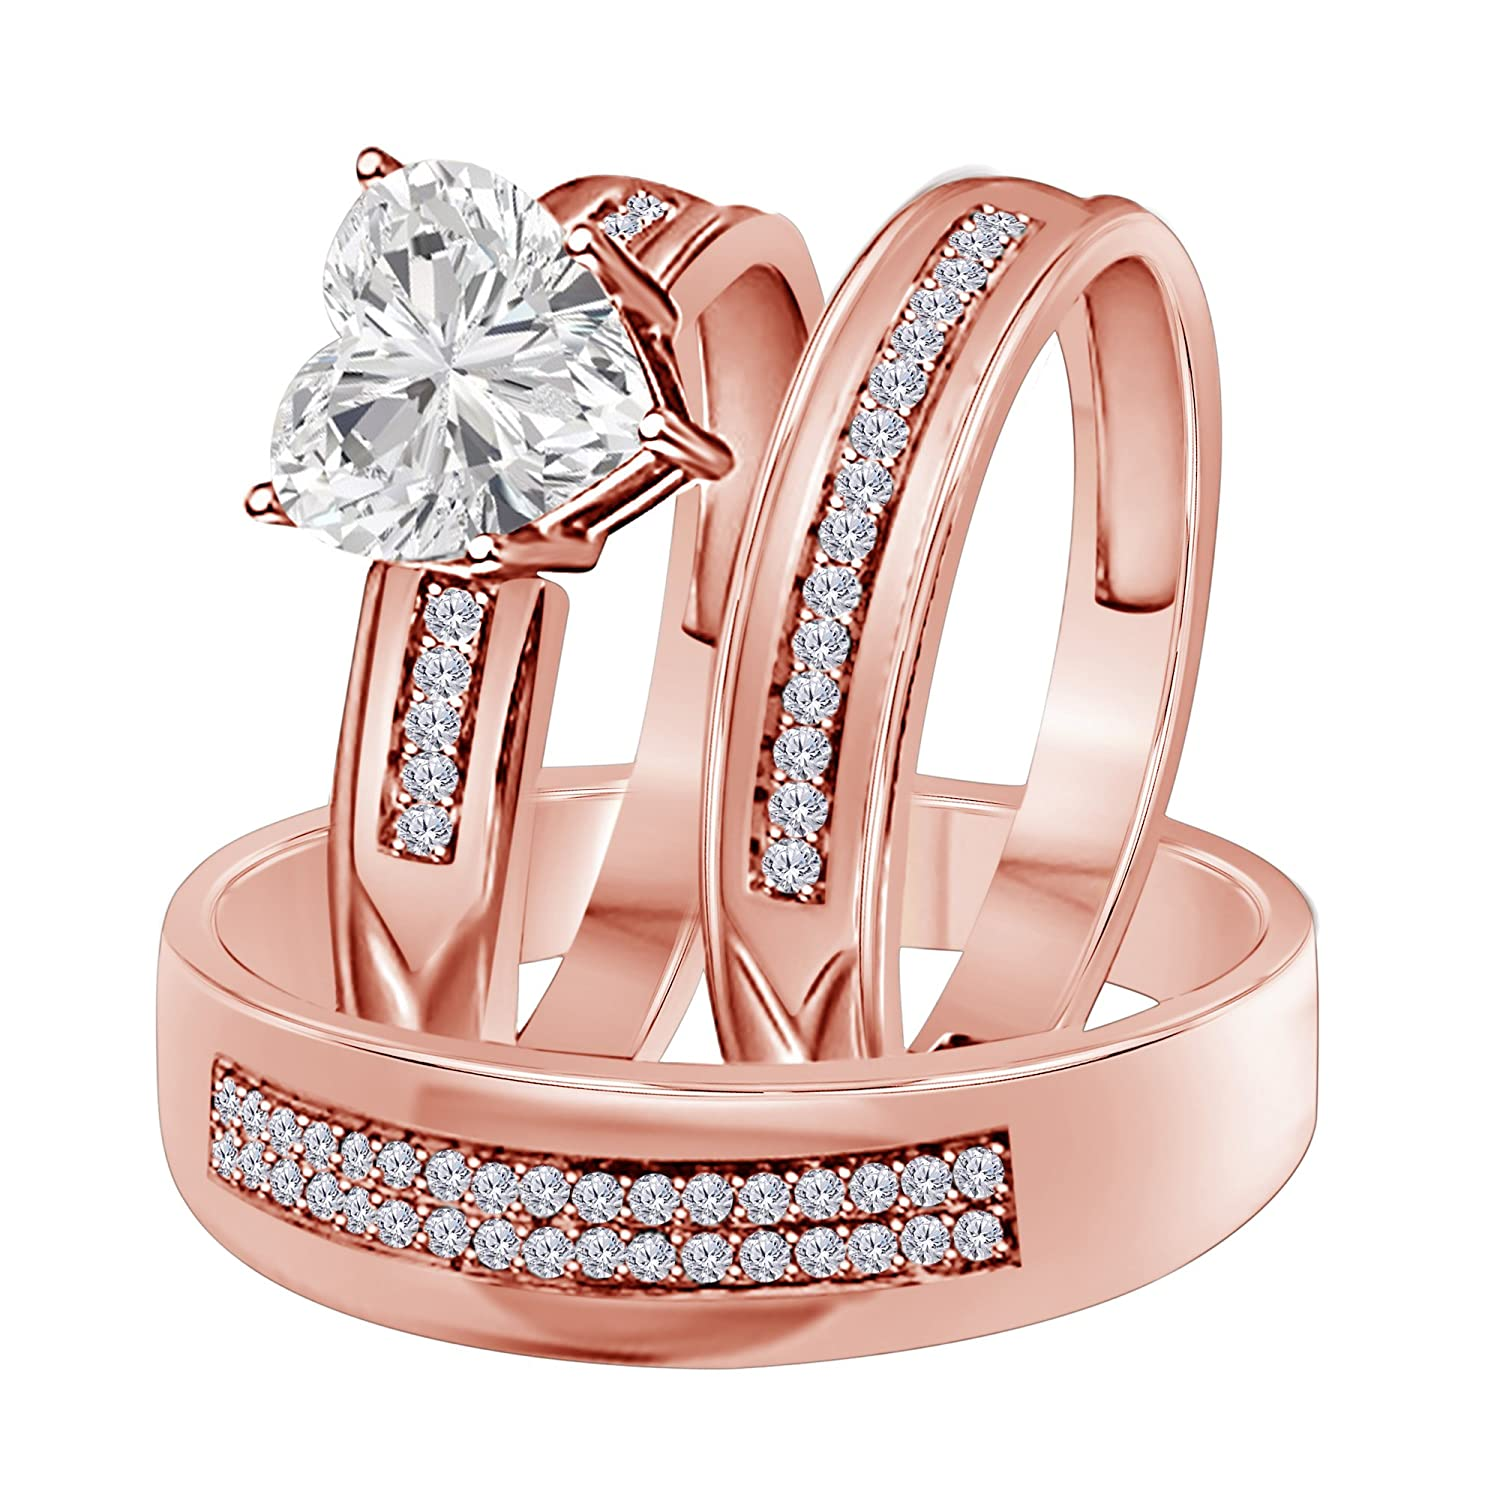 Top 7 wedding ring sets 2018 - Smart Home Devices